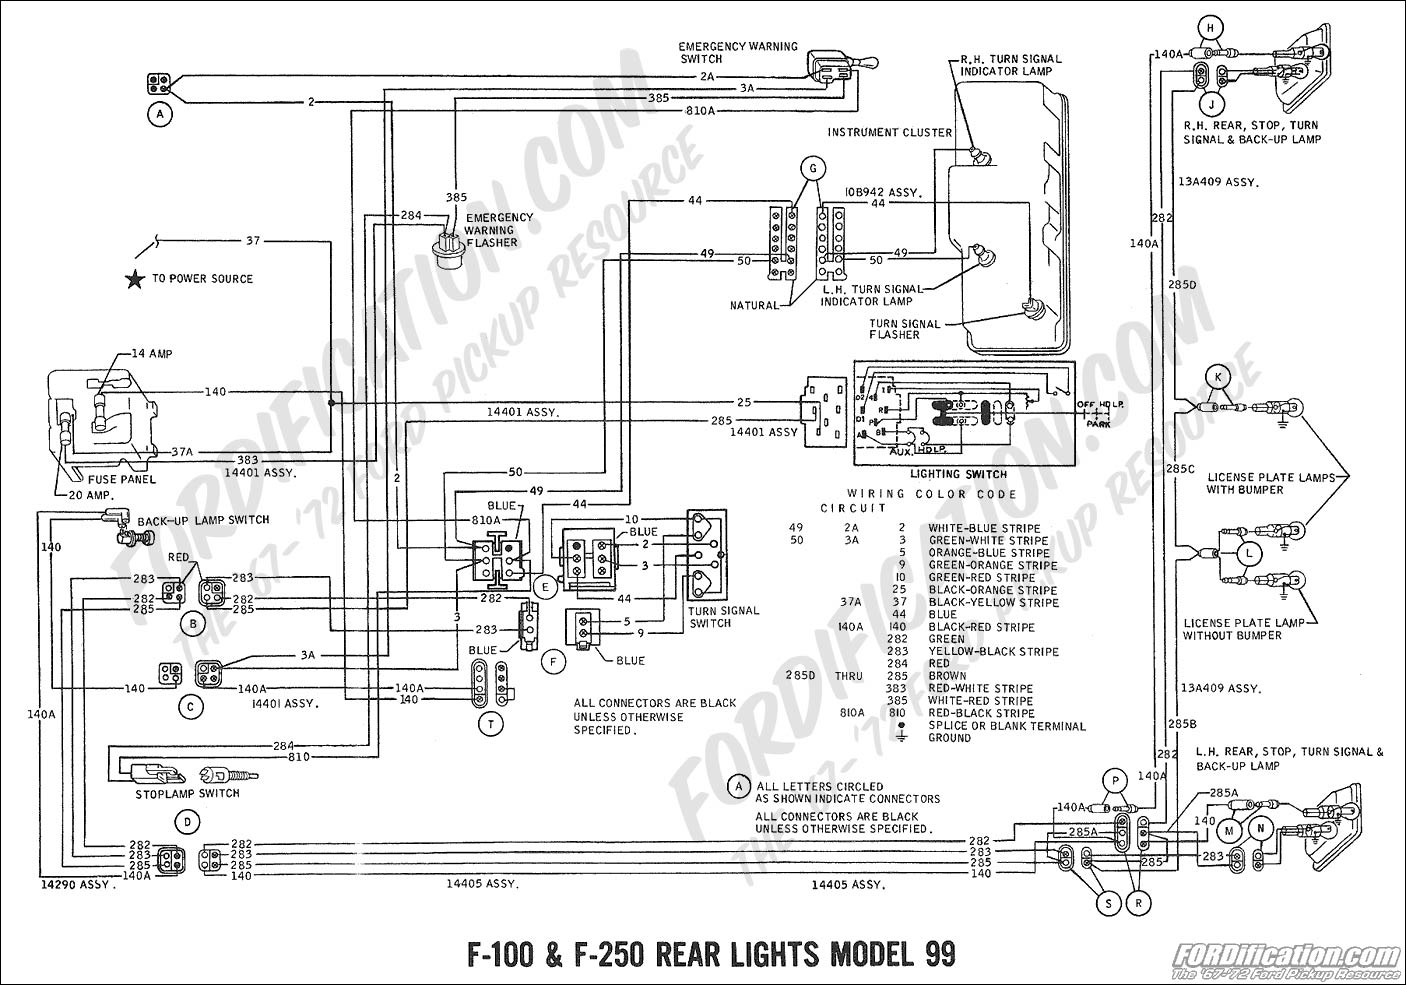 99 toyota camry wiring harness with Schematics H on 387519 Help Need Wiring Diagram as well Dodge Ram Tcc Solenoid Location further 97 Honda Accord Oxygen Sensor Wiring Diagram furthermore Gmc Camshaft Position Cmp Sensor as well 20276 2003 Toyota Corolla Need Know Wire Upstream.